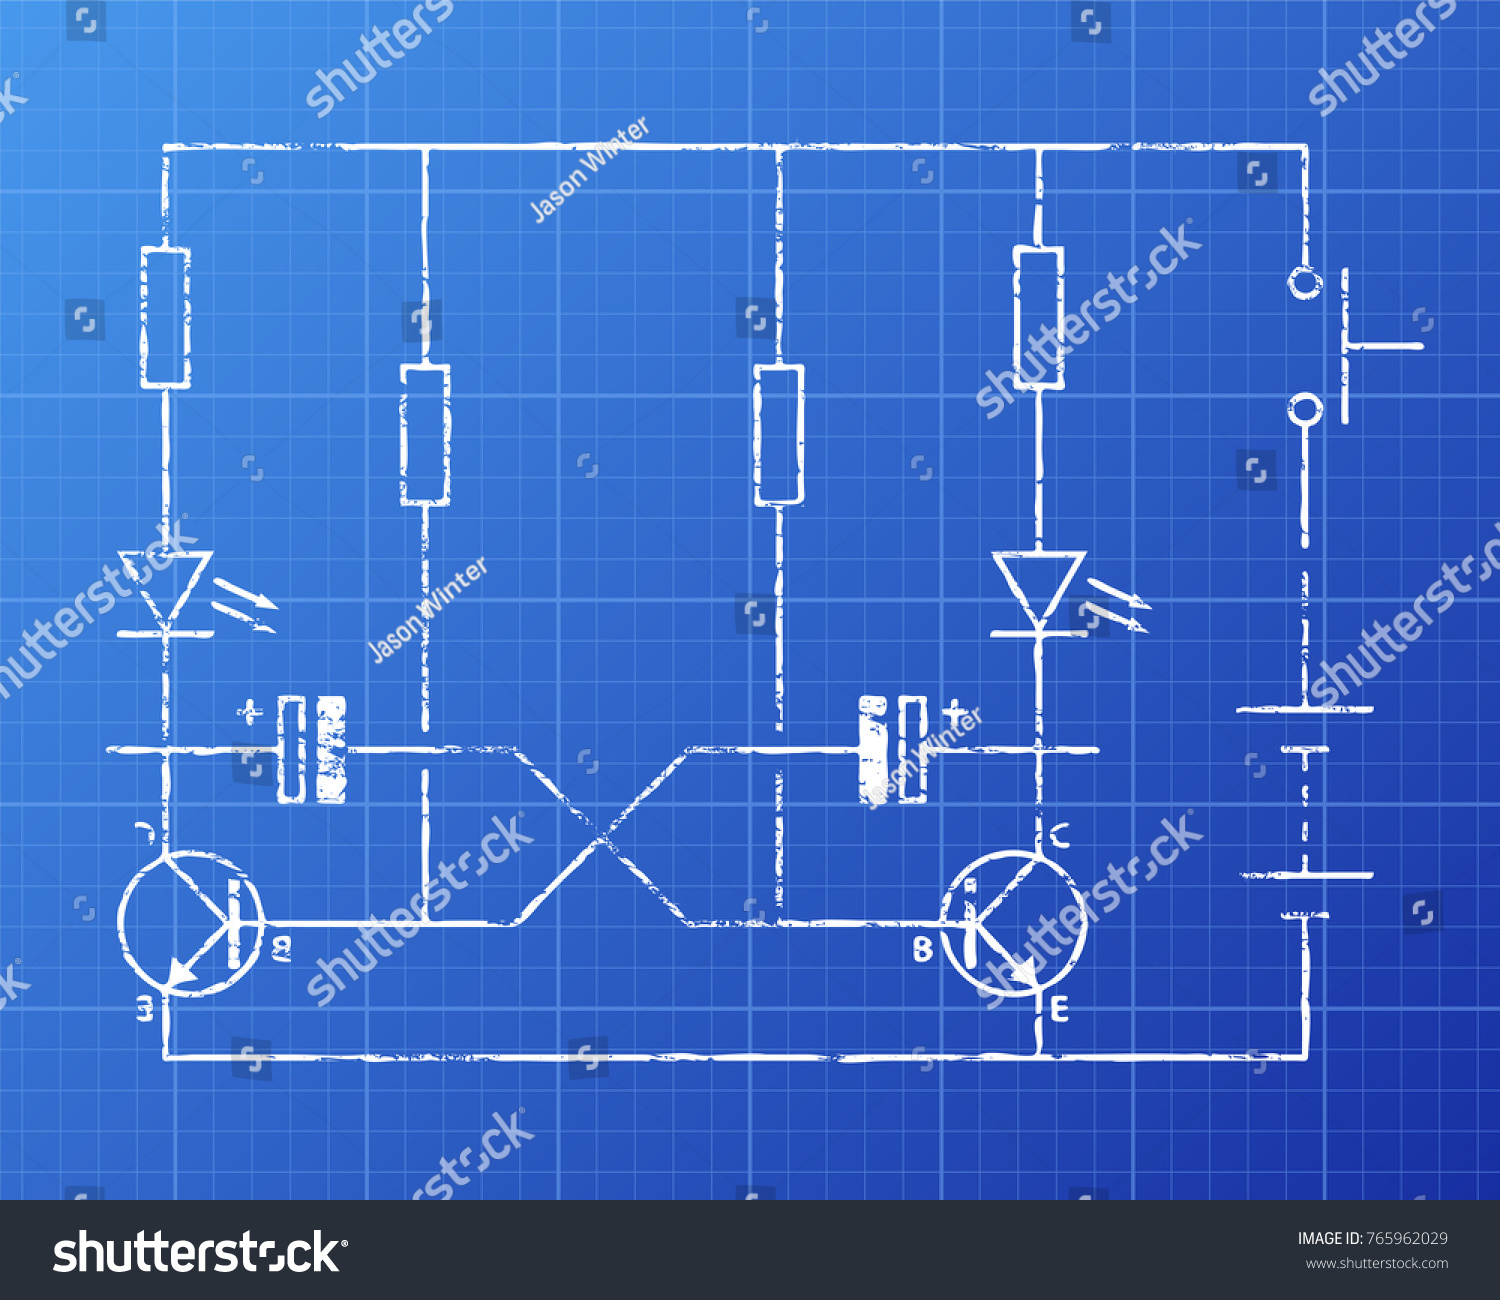 hight resolution of simple flip flop circuit hand drawn on blueprint background